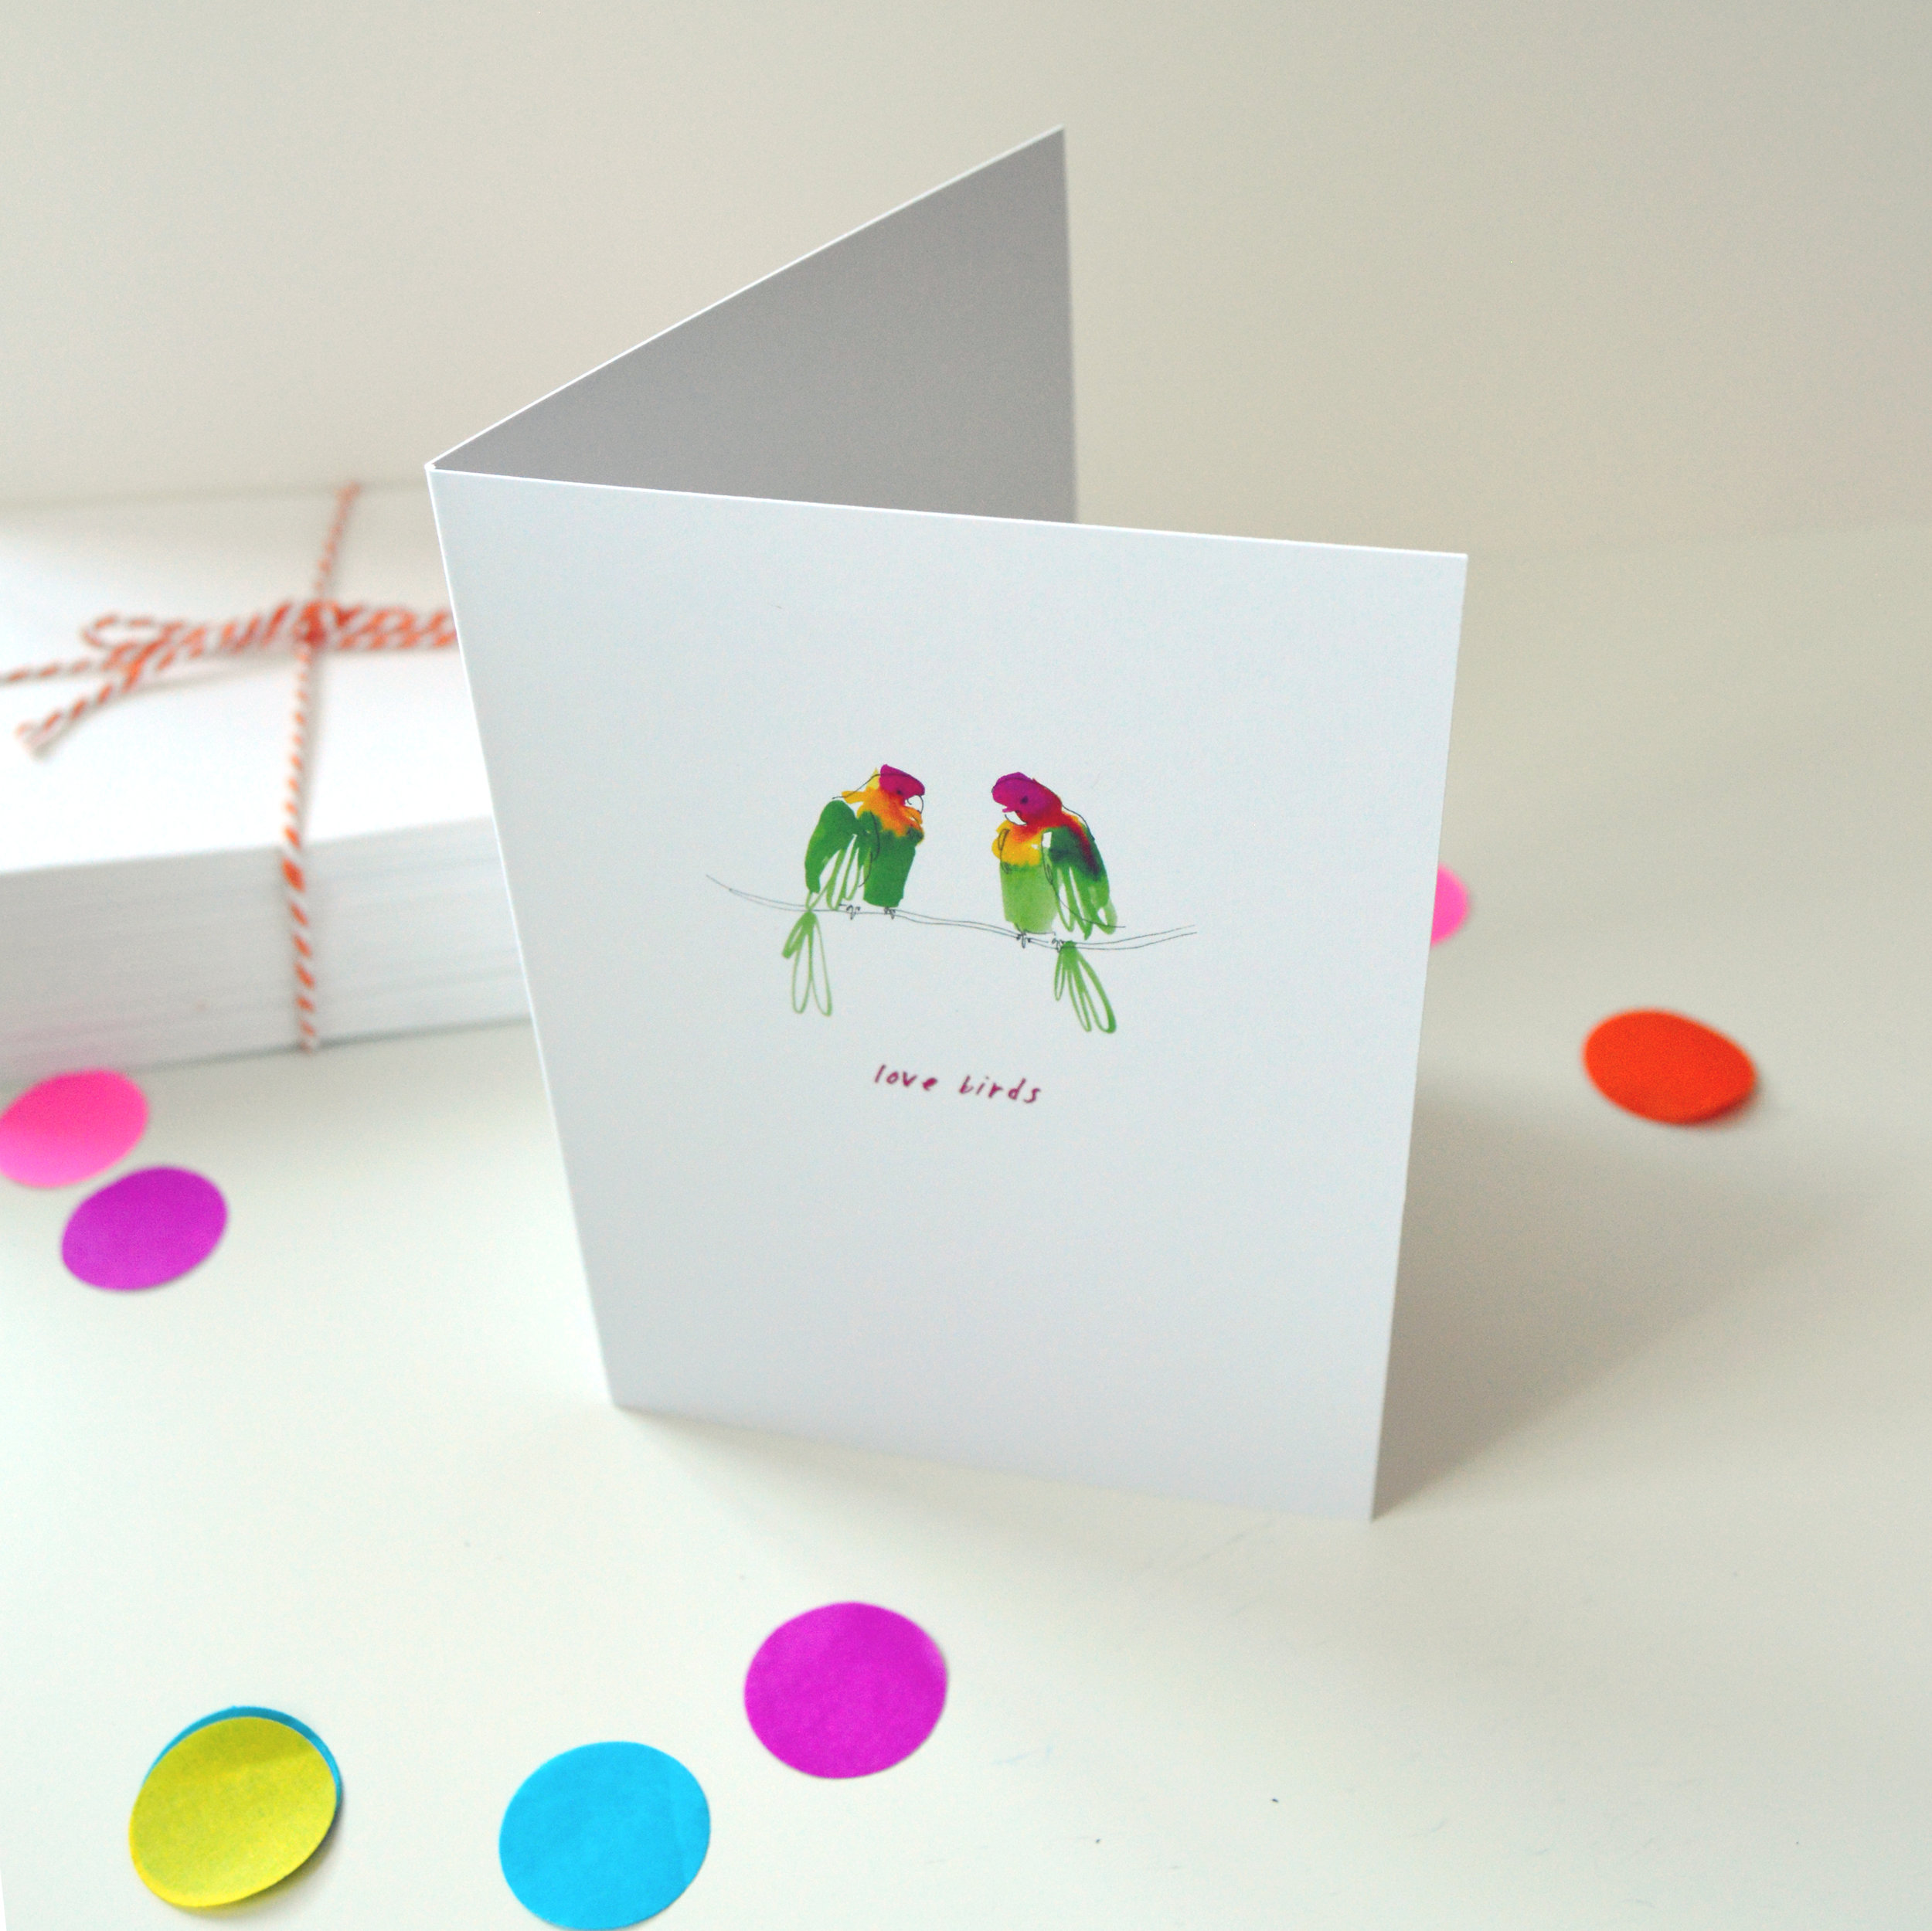 'Lovebirds' painted Valentine's Day  greetings card created from quirky illustrated colourful bird friends.